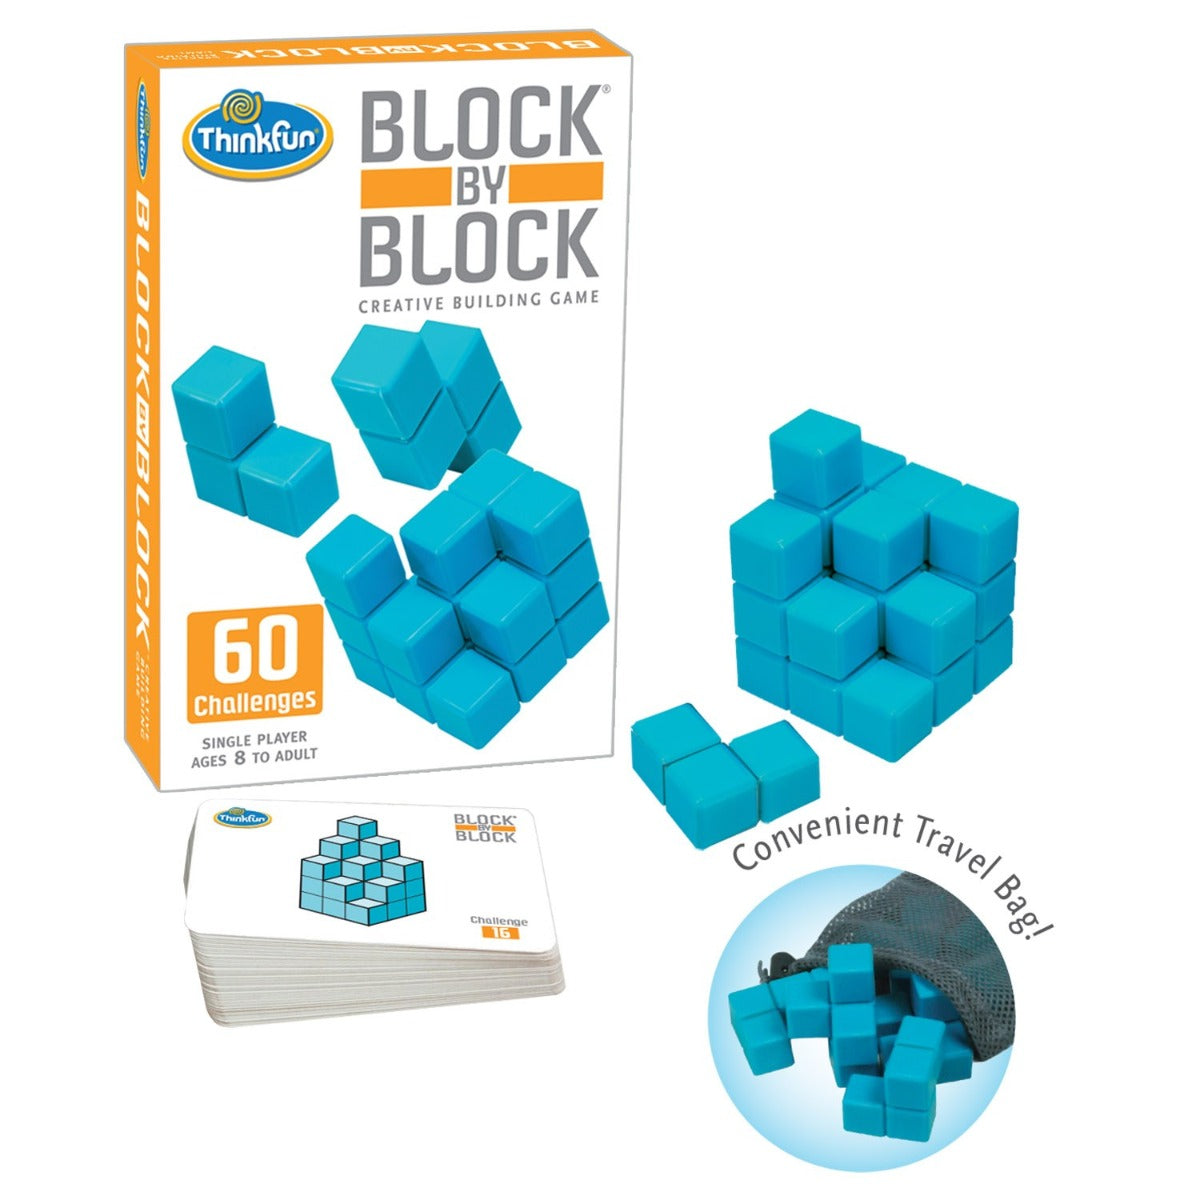 Thinkfun Block by Block building game